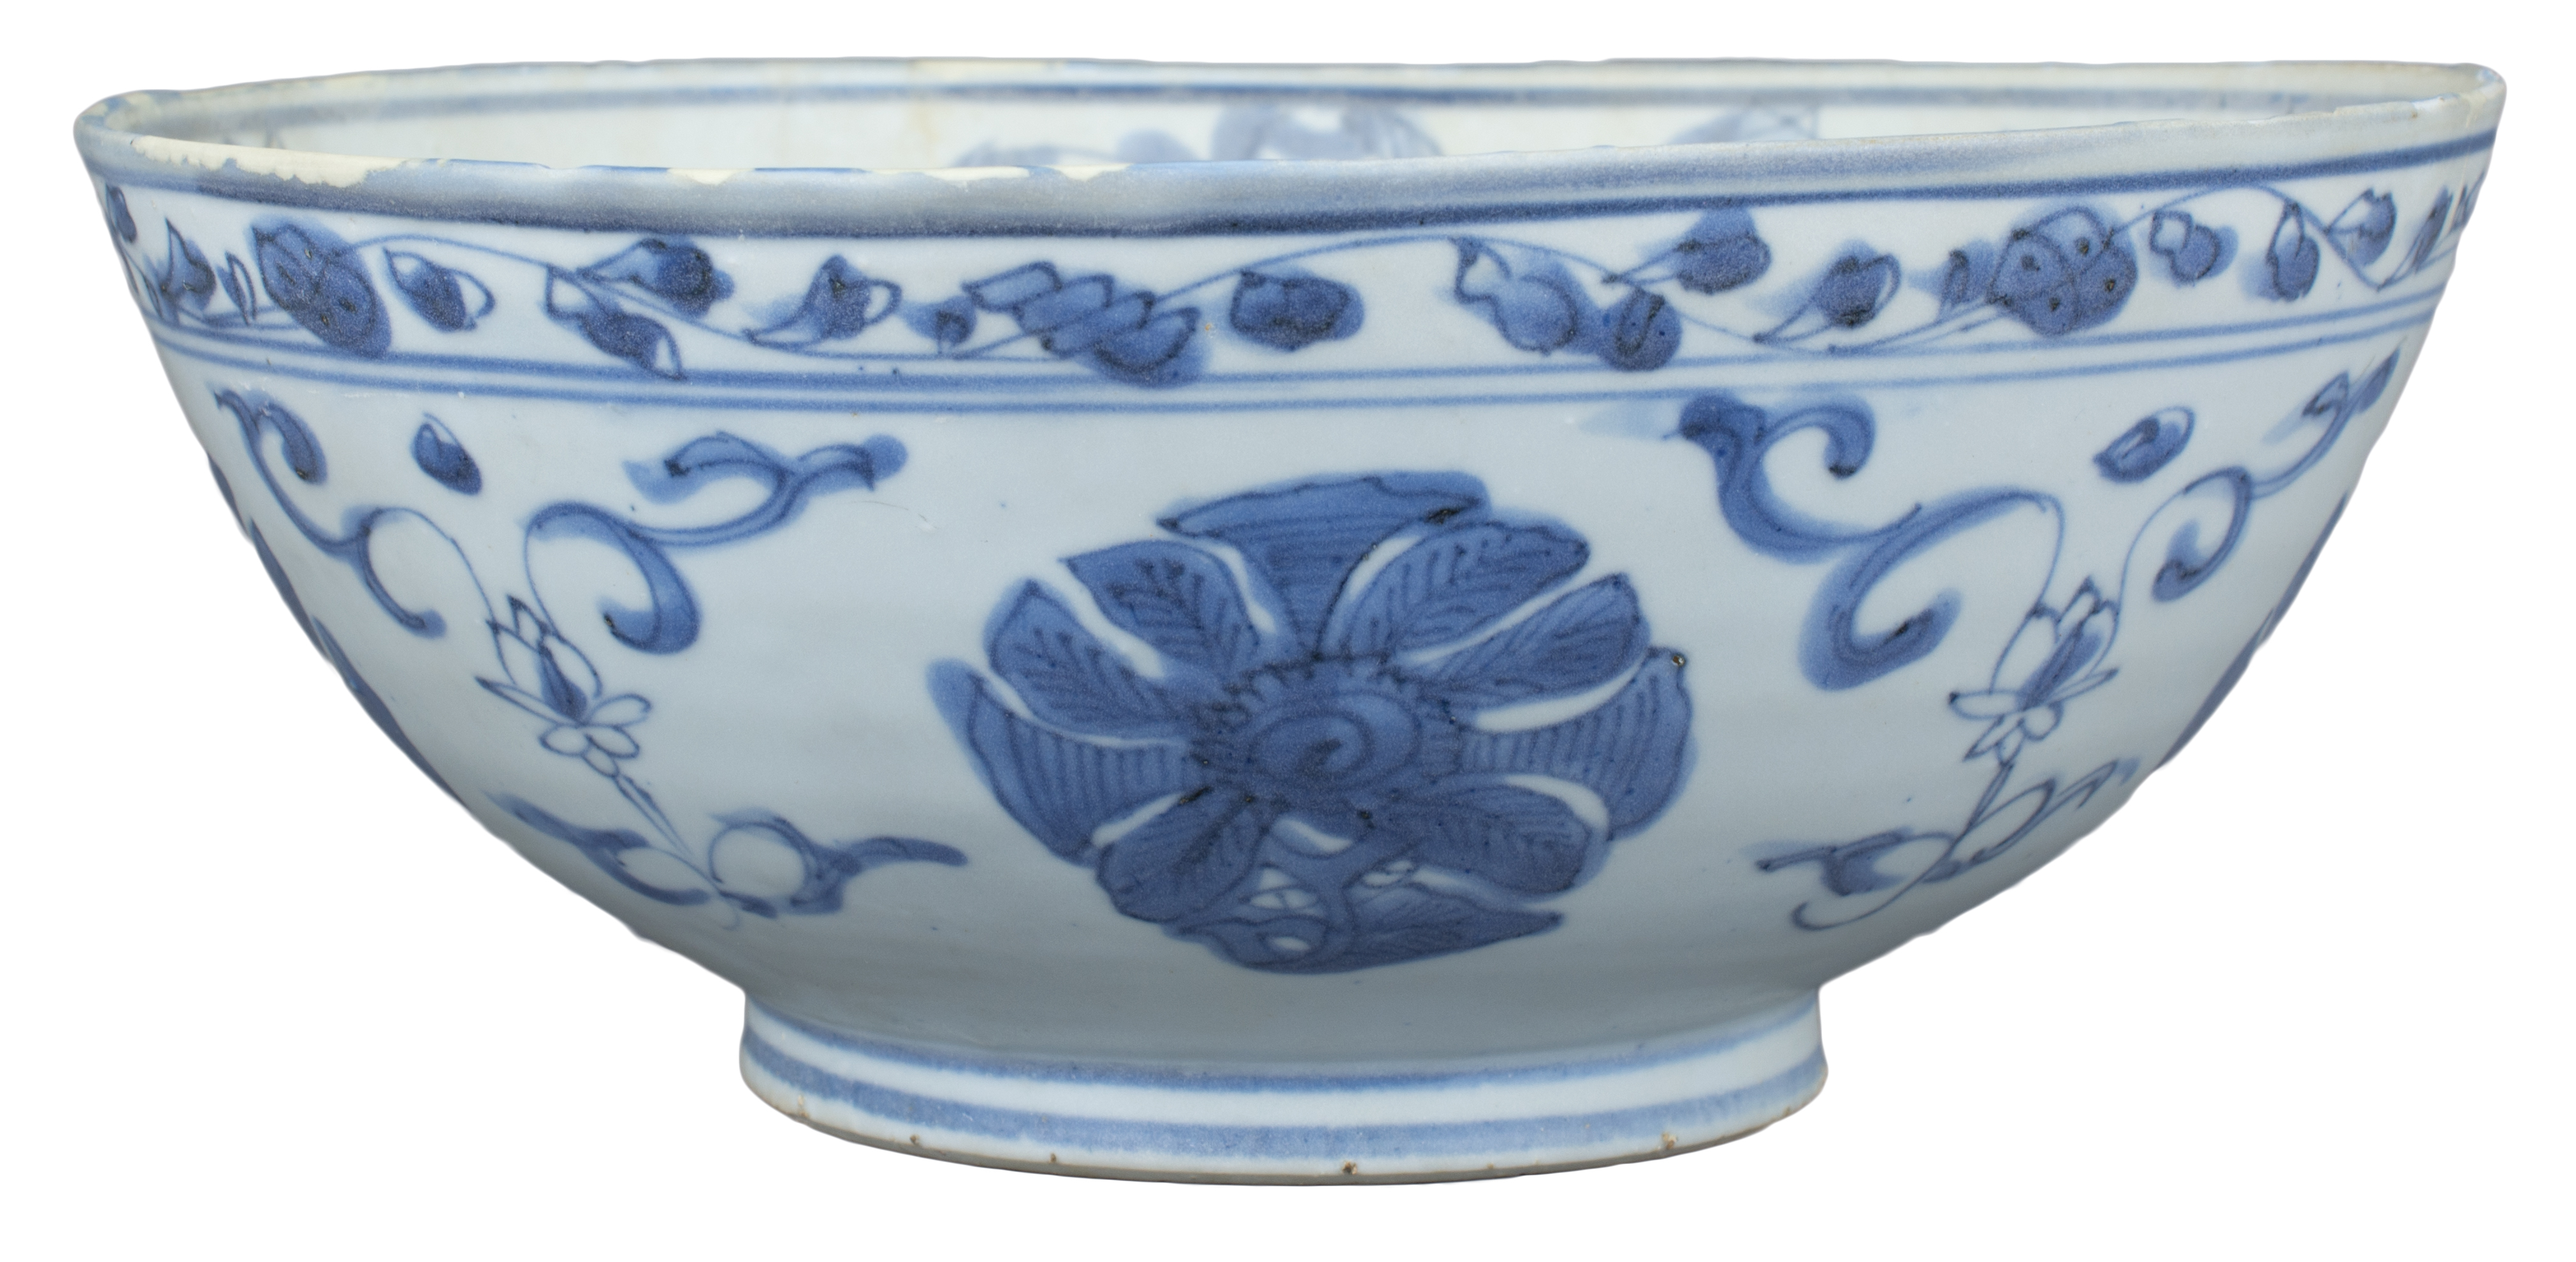 Lot 1 - Large Chinese Ming Dynasty Blue & White Porcelain Bowl - Wanli Shipwreck